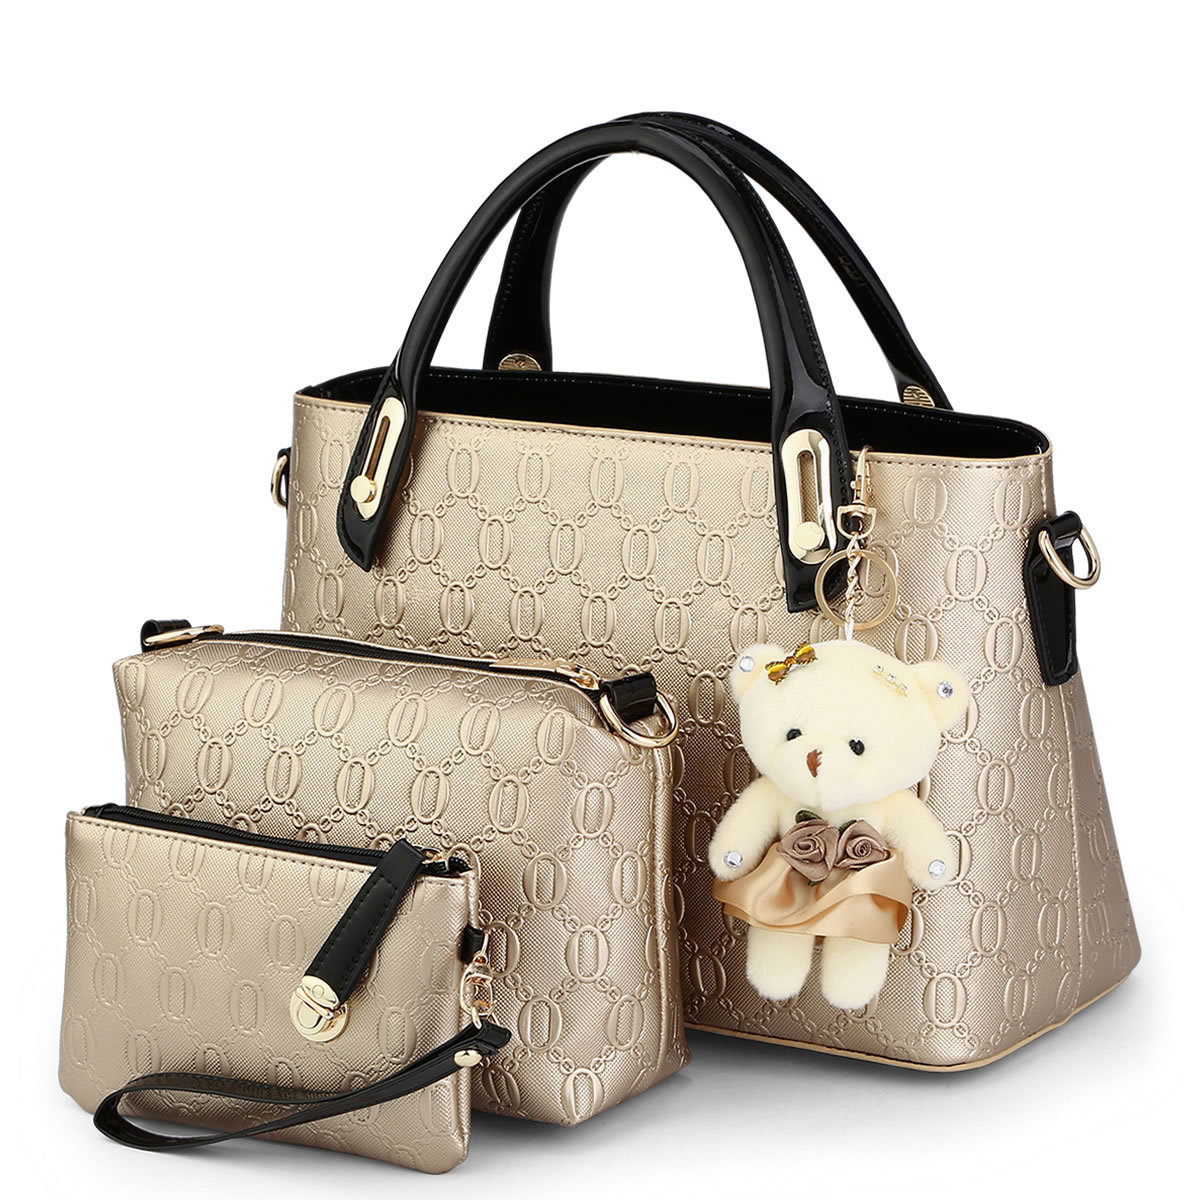 High Quality Women Bag 3 Pcs/set With bear toy Casual Embossed Handbags Crossbody bag bolsa wallet Over the Shoulder Bags tote embossed pu leather casual 3 pieces tote bag set